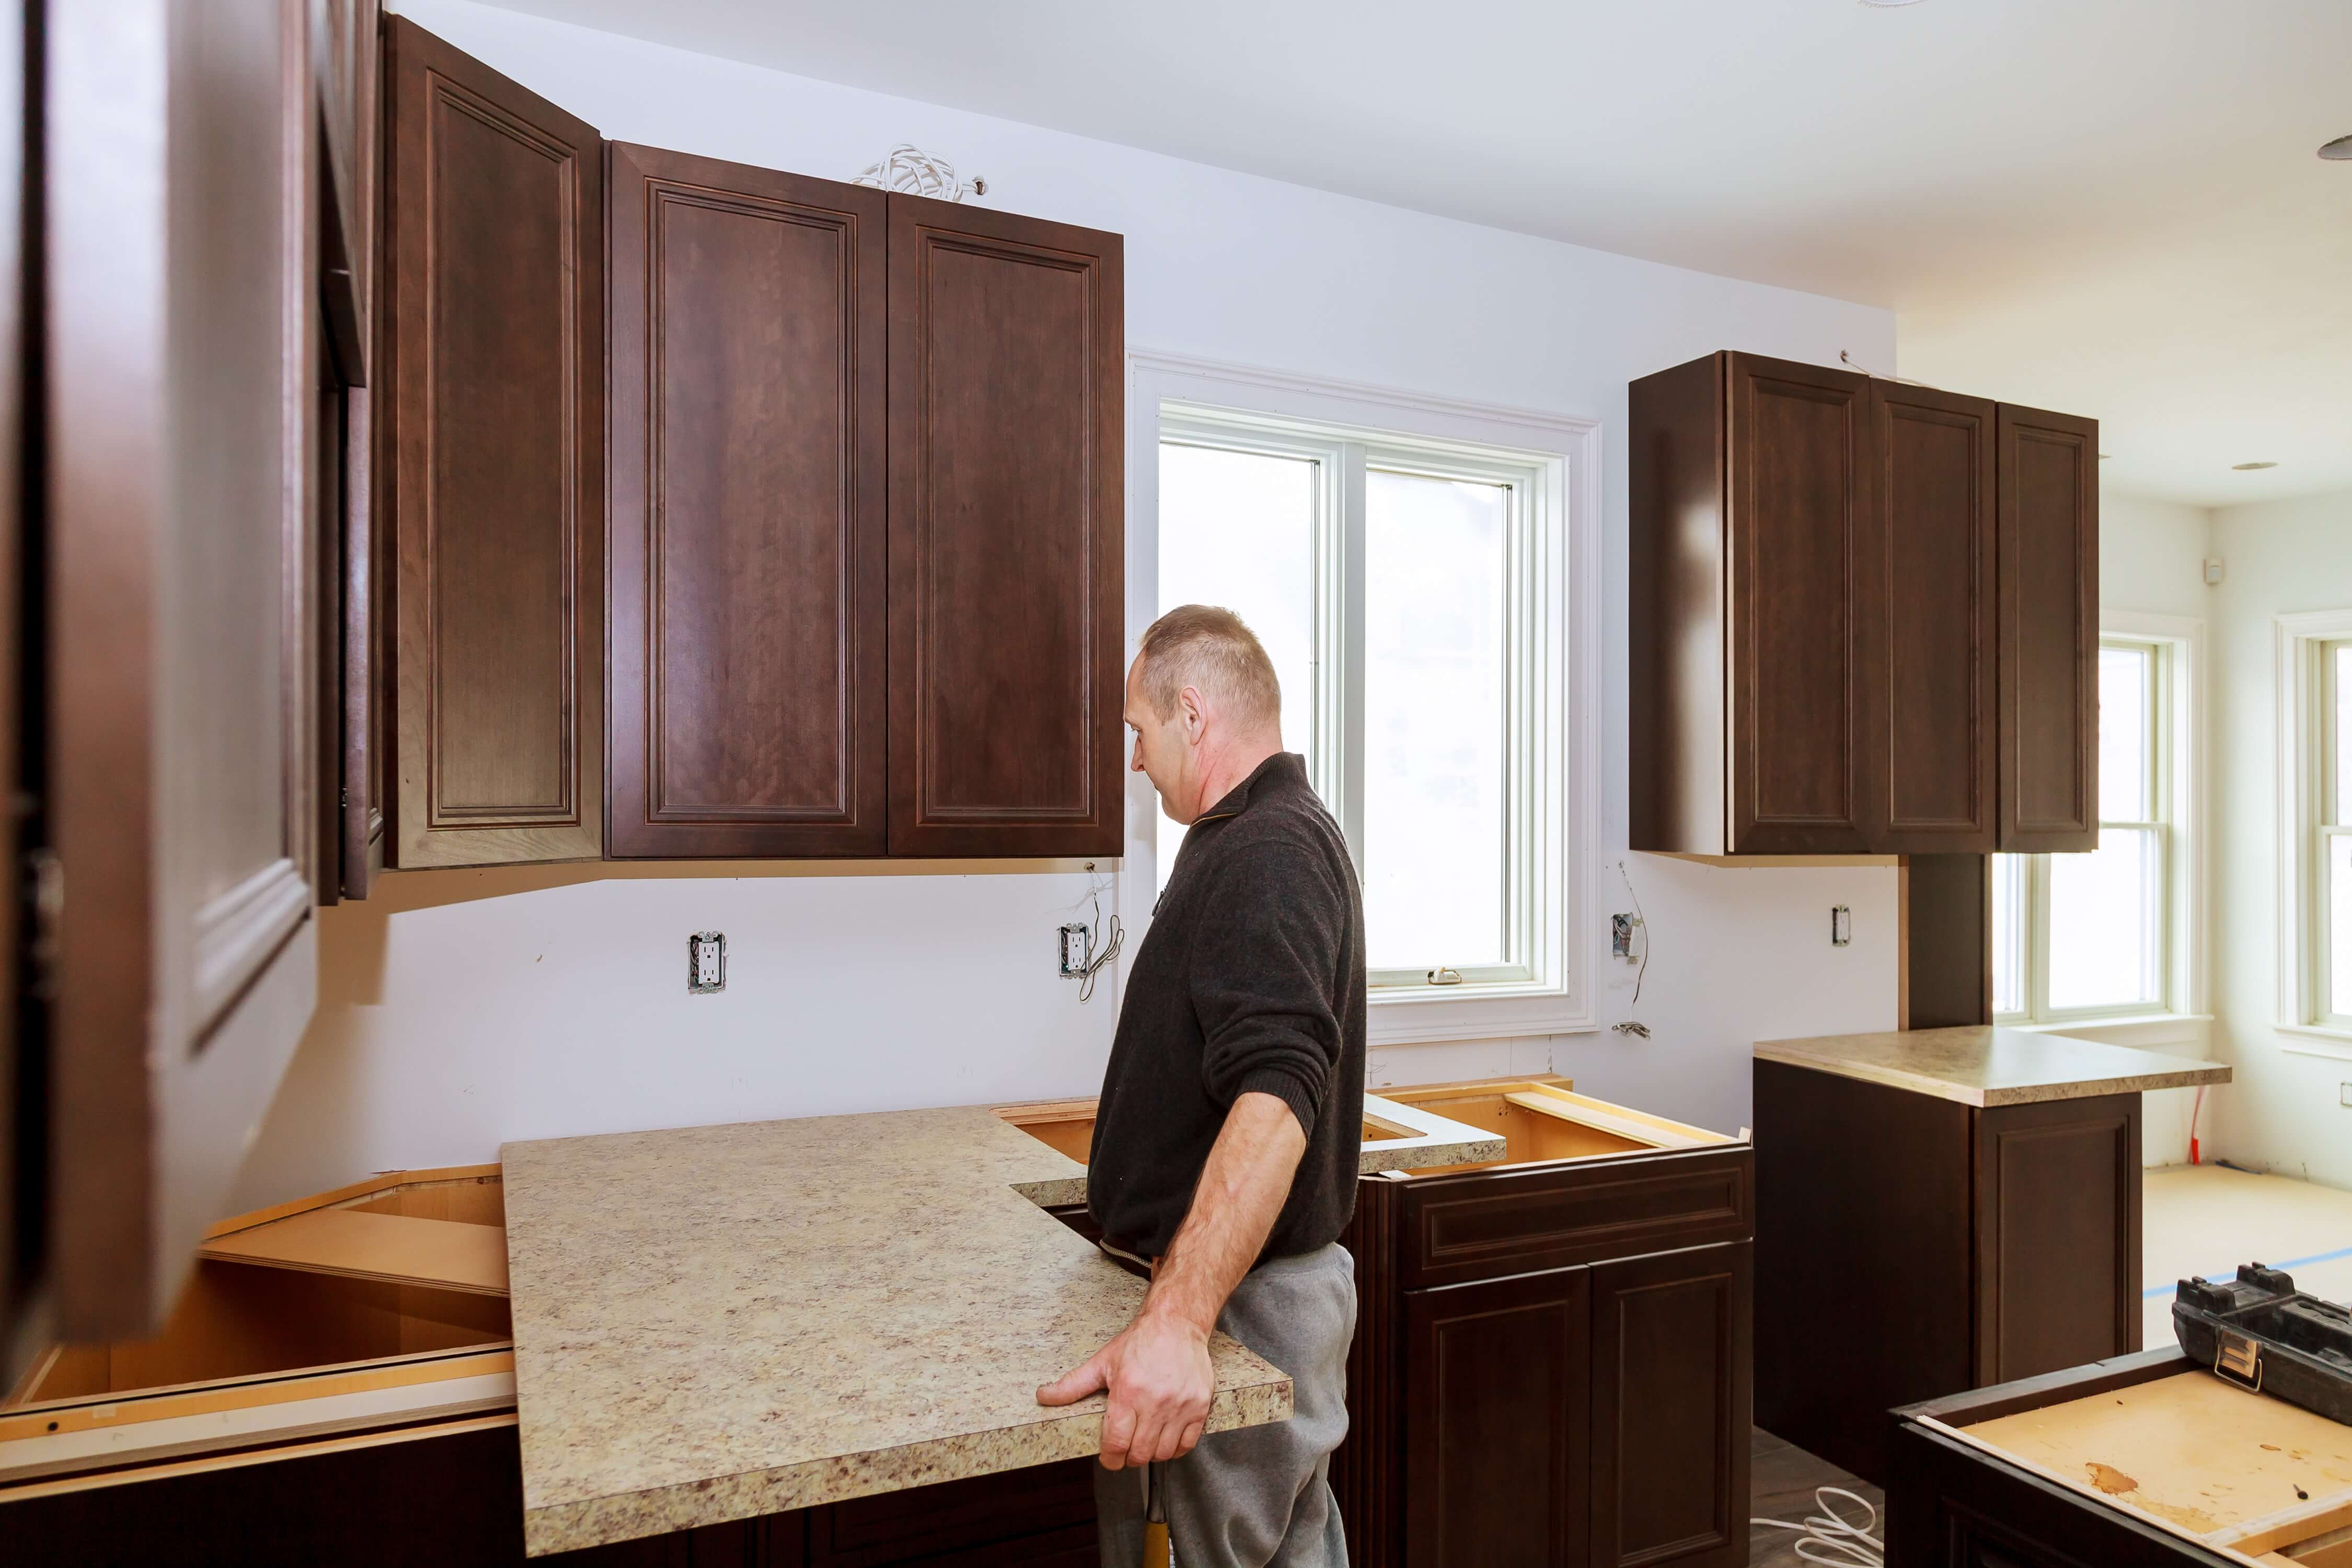 With our Streamline program, you have a total of 44 stock granite and quartz selections, you can go with any sink you like, and there are seven stock edge profiles.